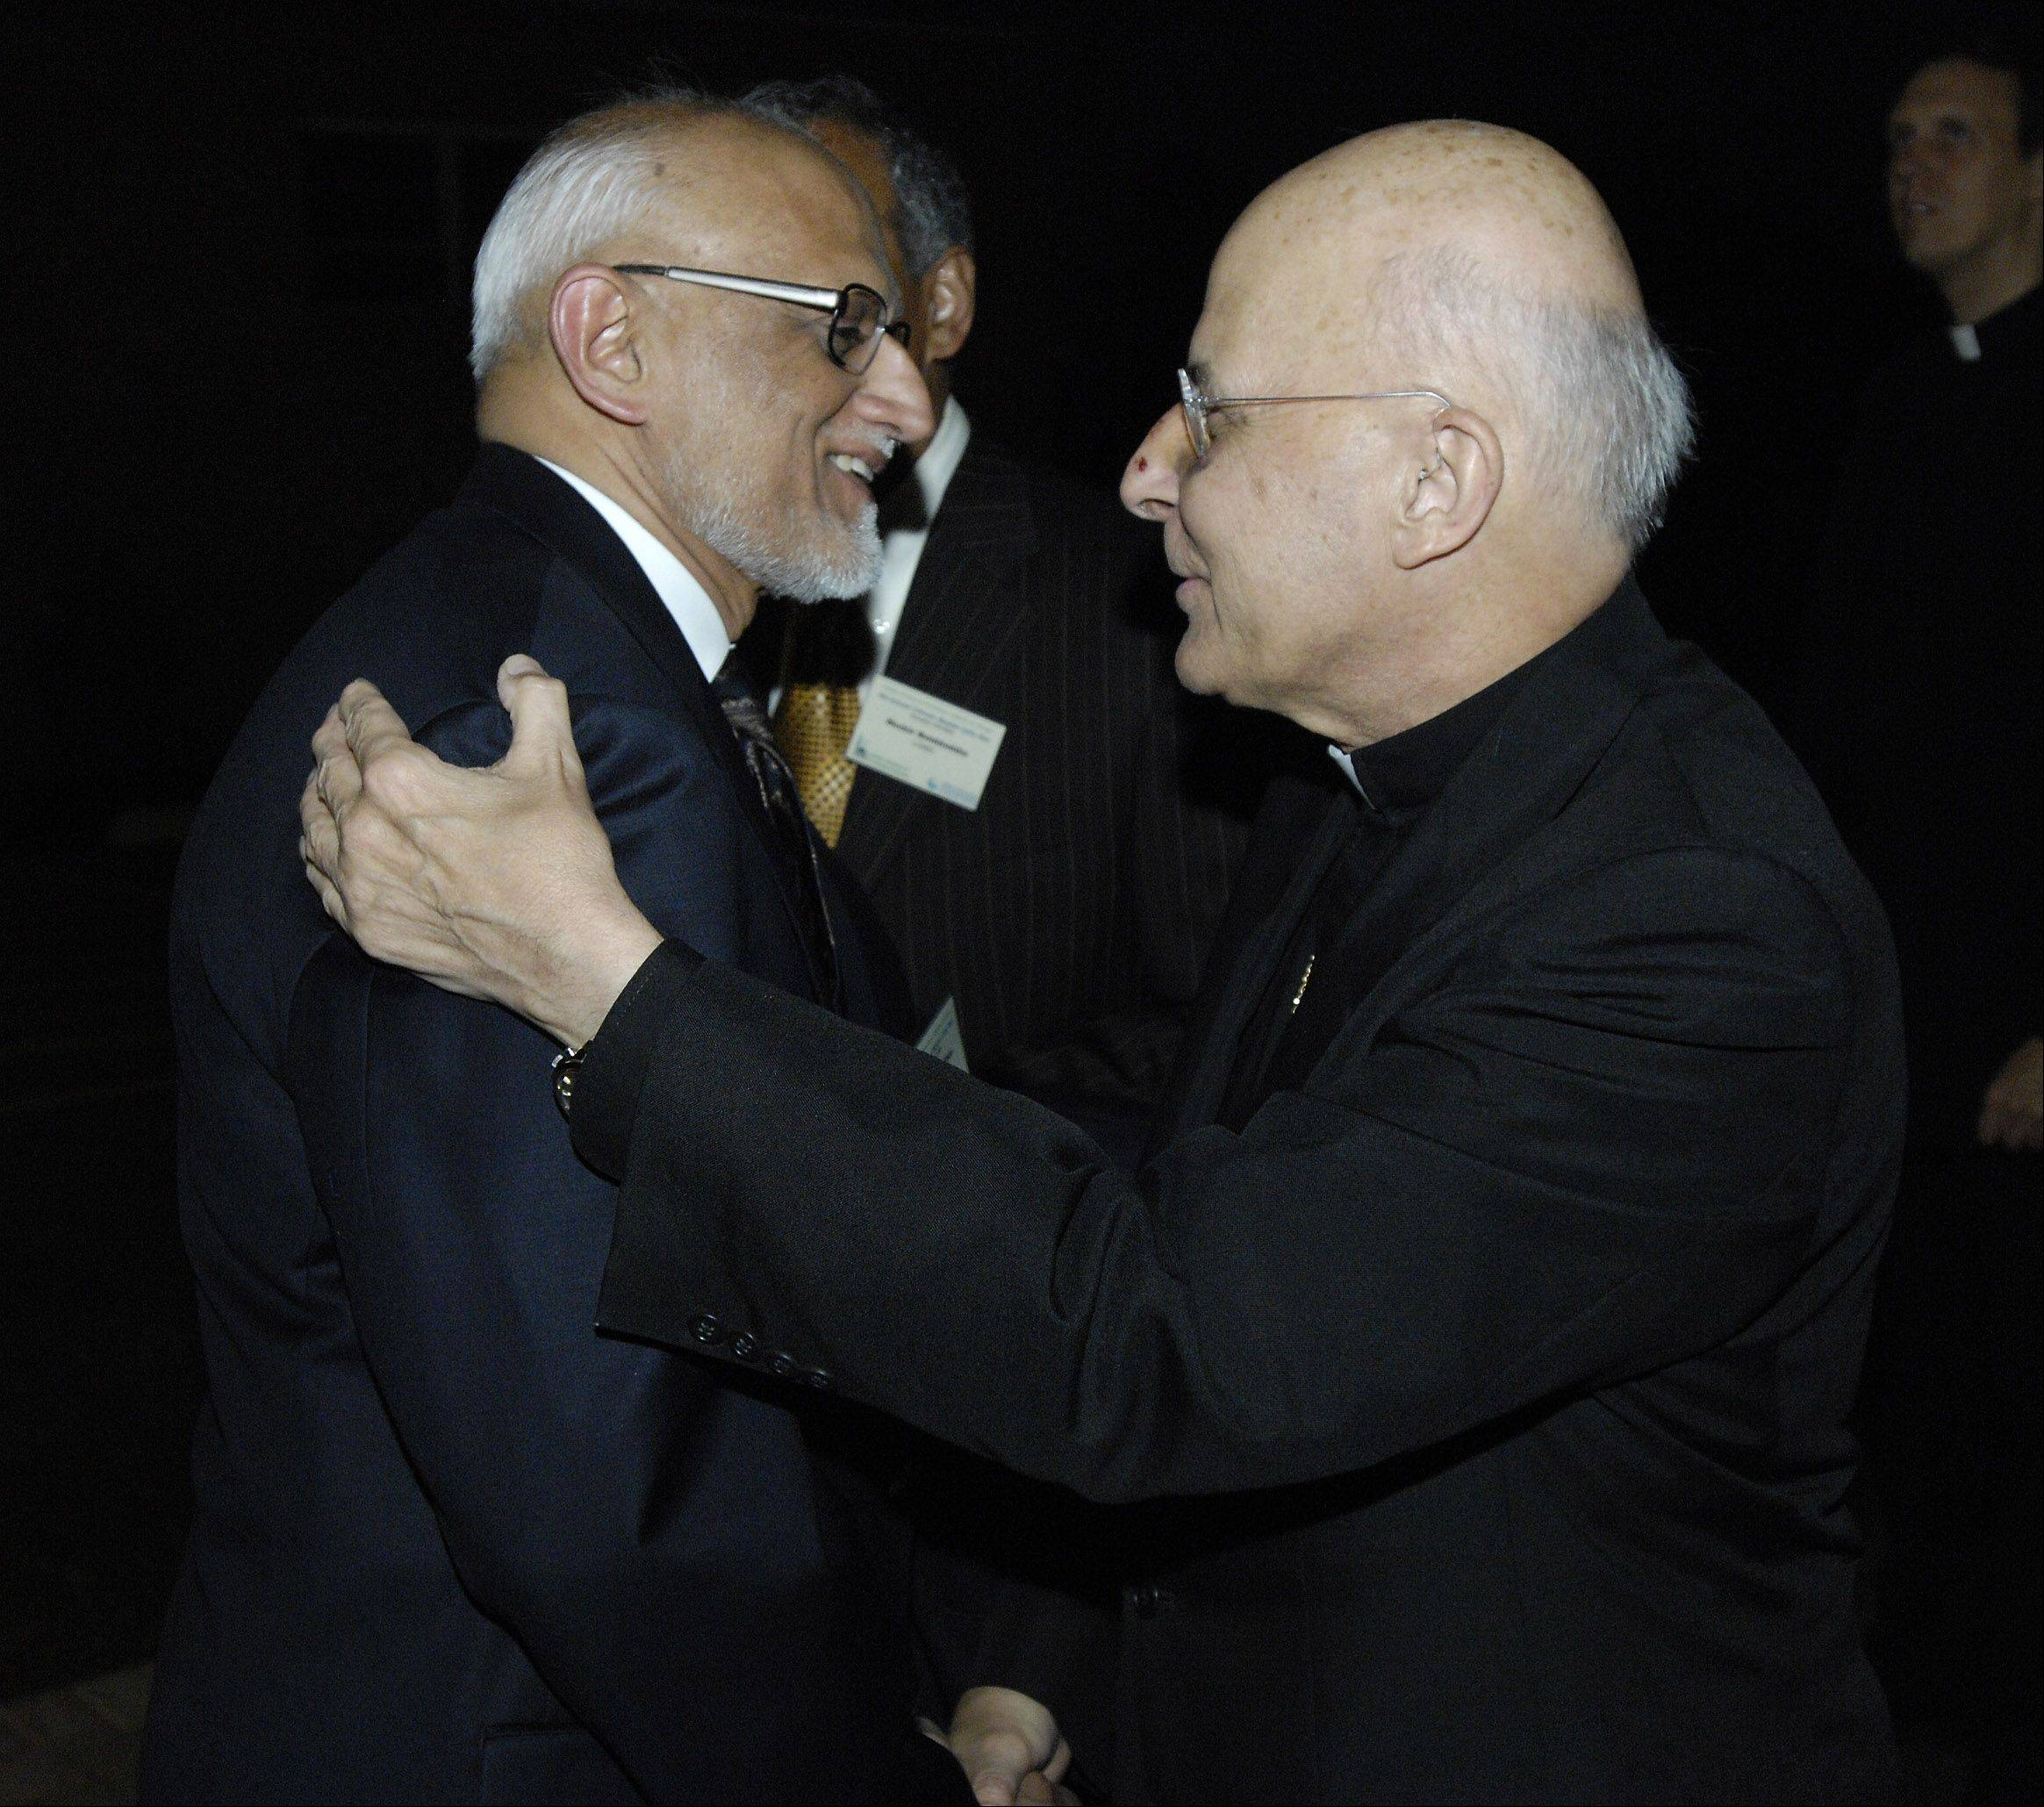 Islamic Society of Northwest Suburbs President Quadir Hussain Khan greets Francis Cardinal George in 2007 at the 9th Annual Catholic-Muslim Unity Ramadan Dinner in Rolling Meadows.